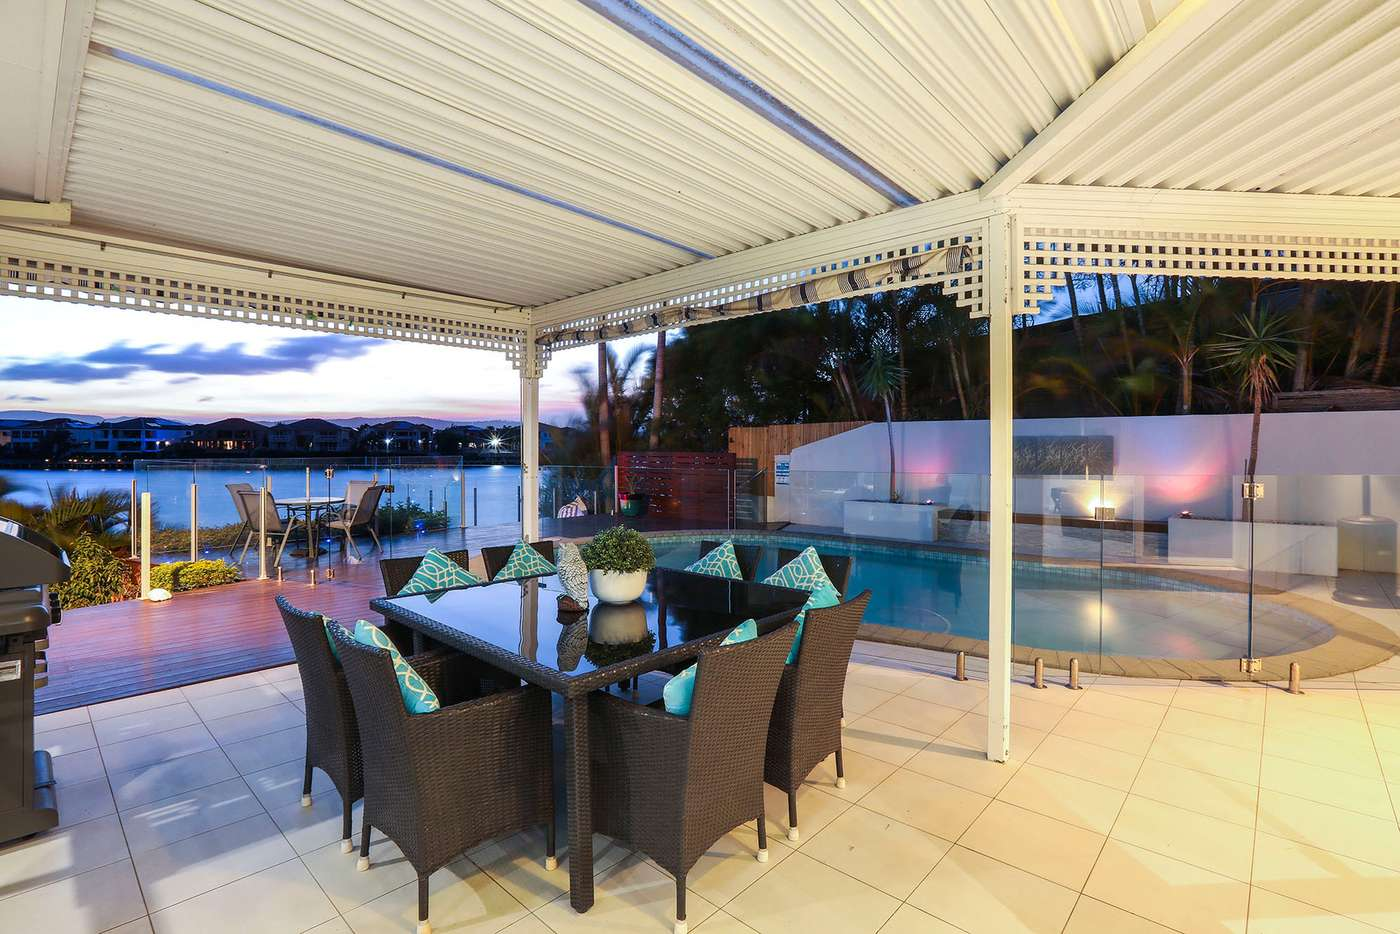 Main view of Homely house listing, 112 Port Jackson Boulevard, Clear Island Waters QLD 4226